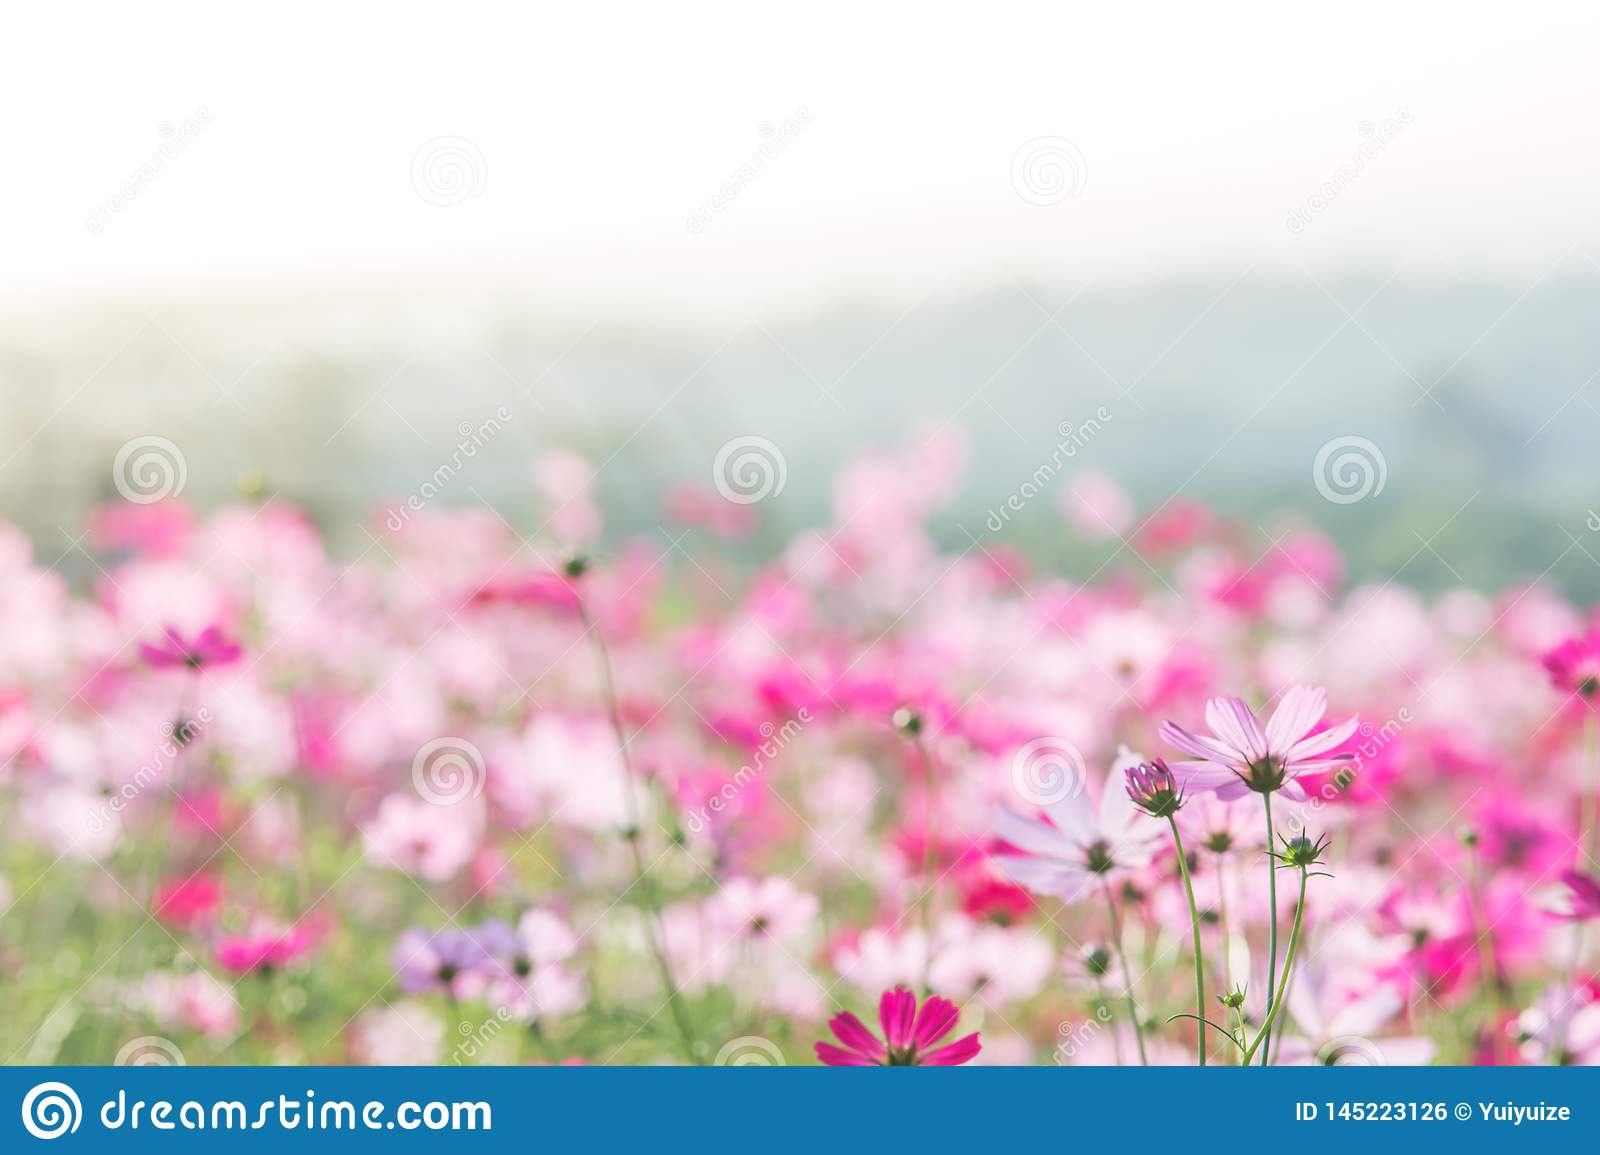 Pink Cosmos flowers field, landscape of flowers.